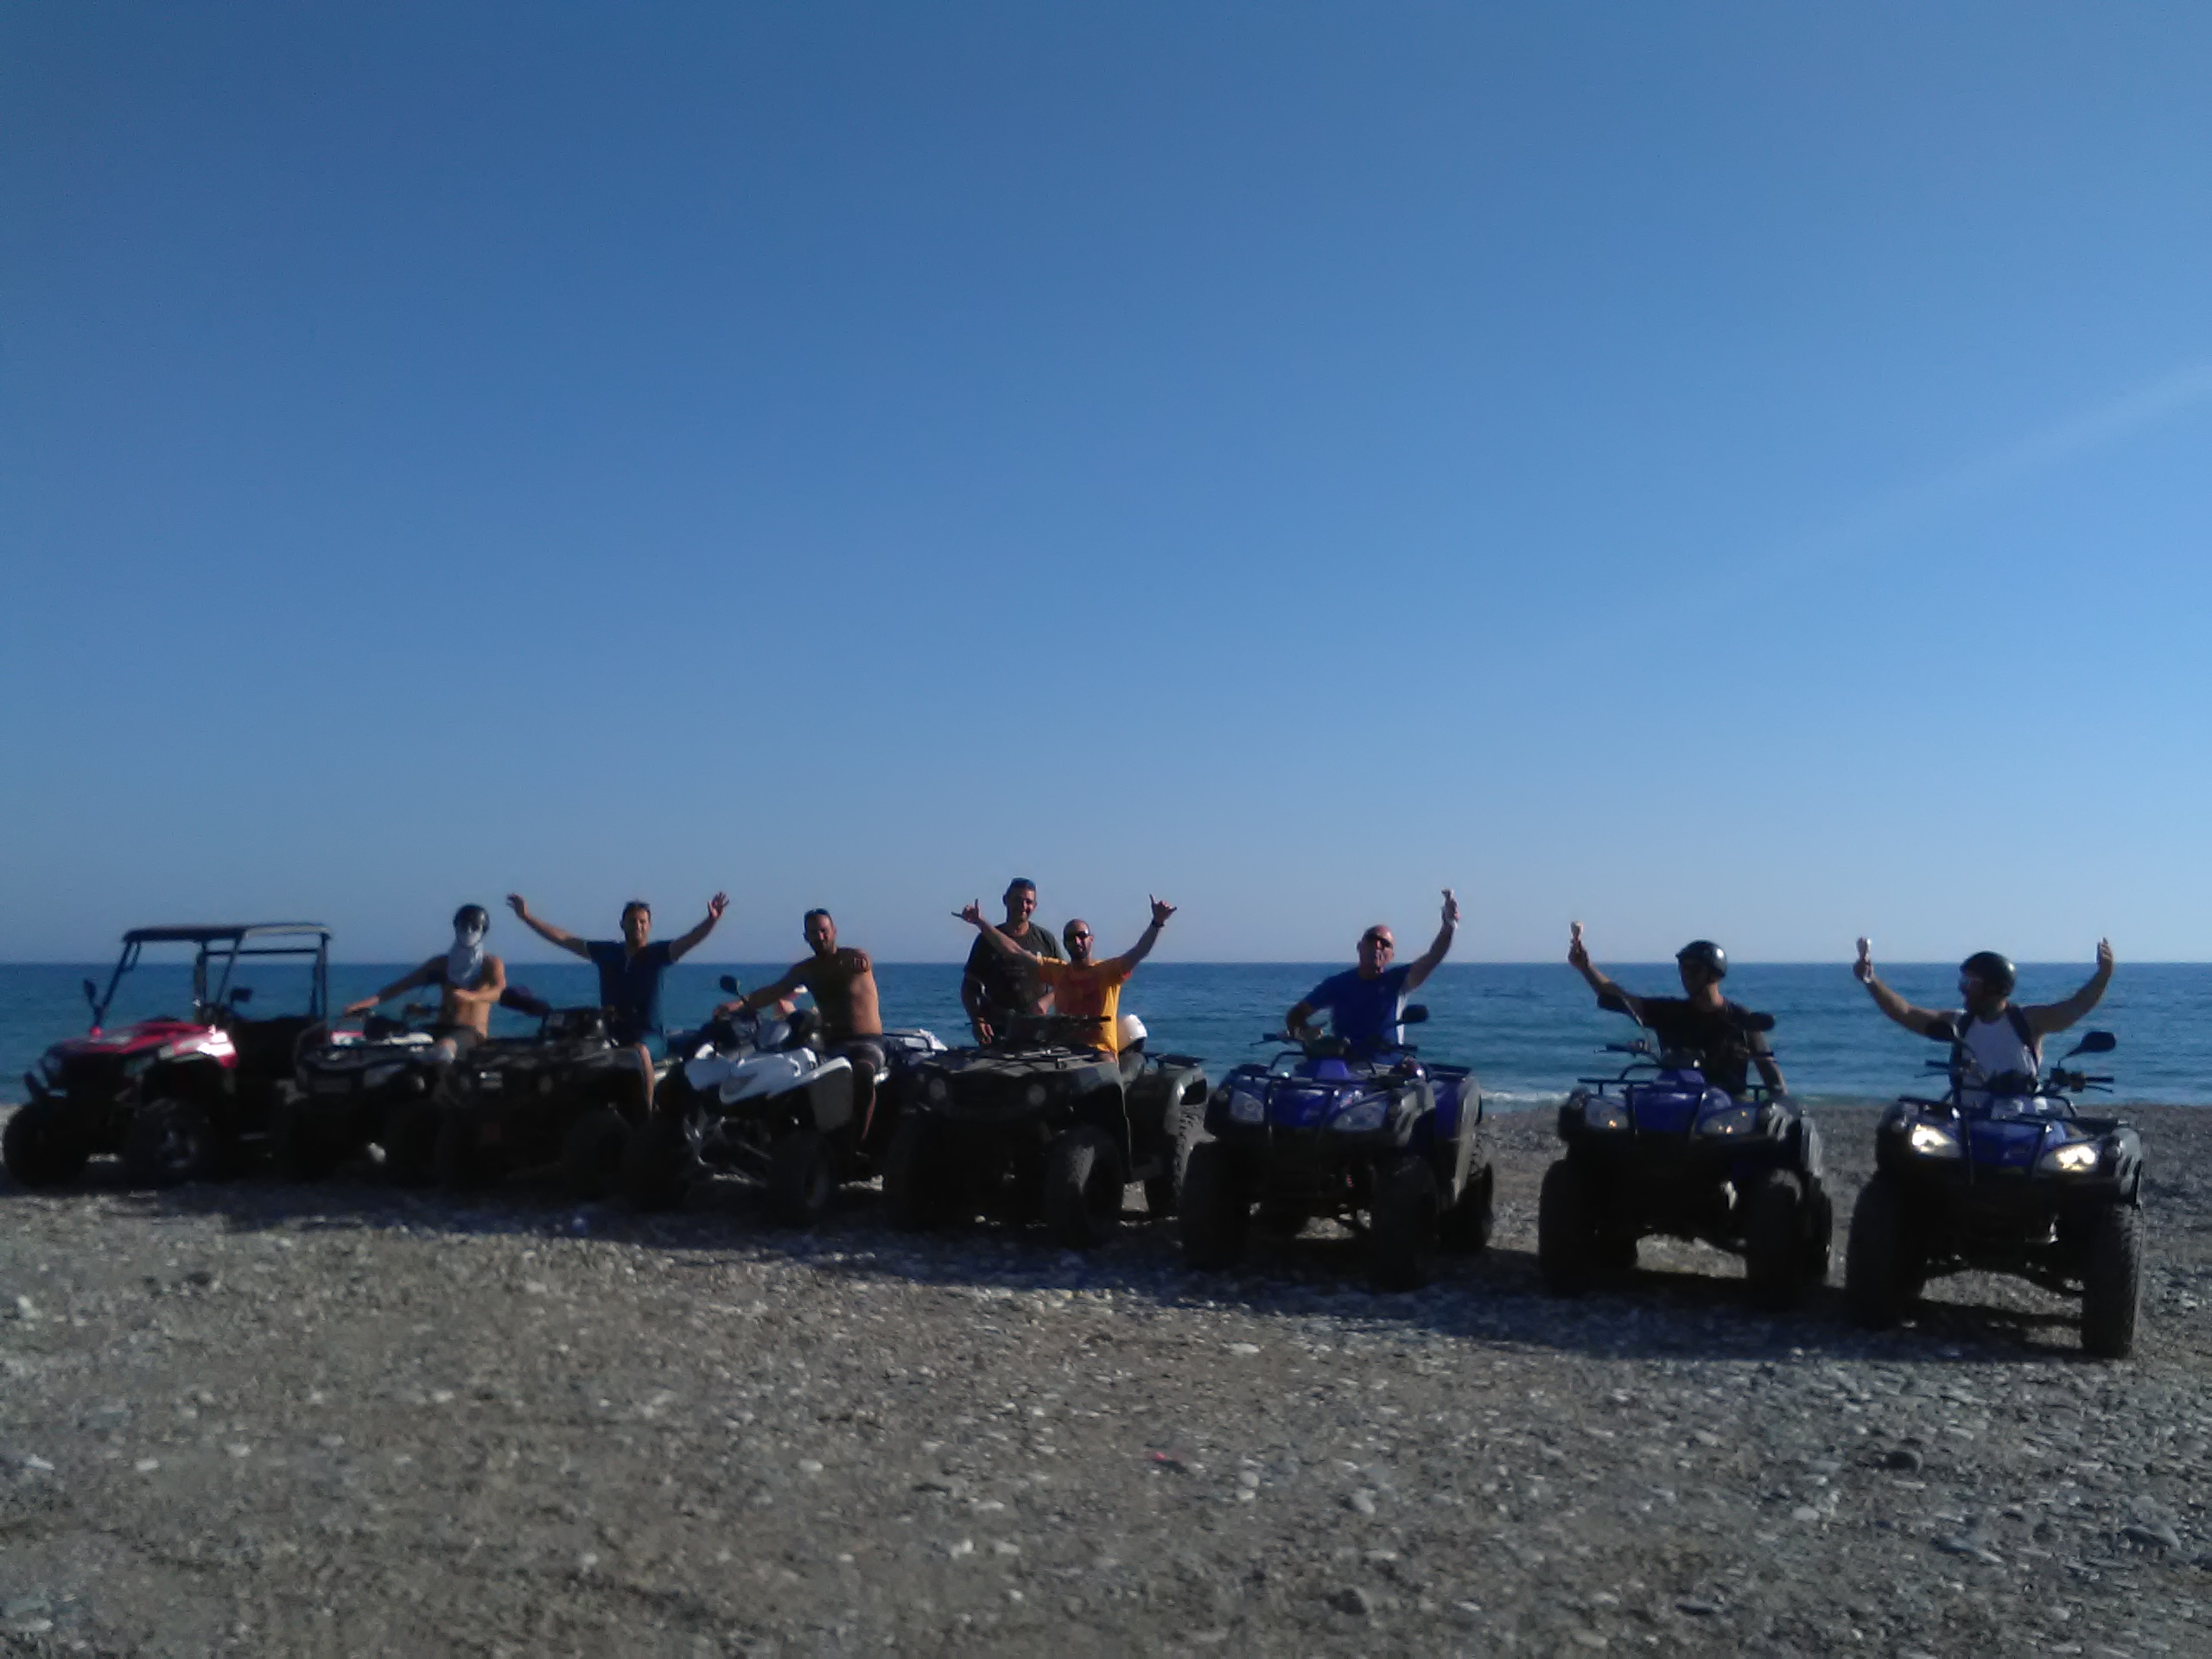 crazy israel on group safaris at kourion beach